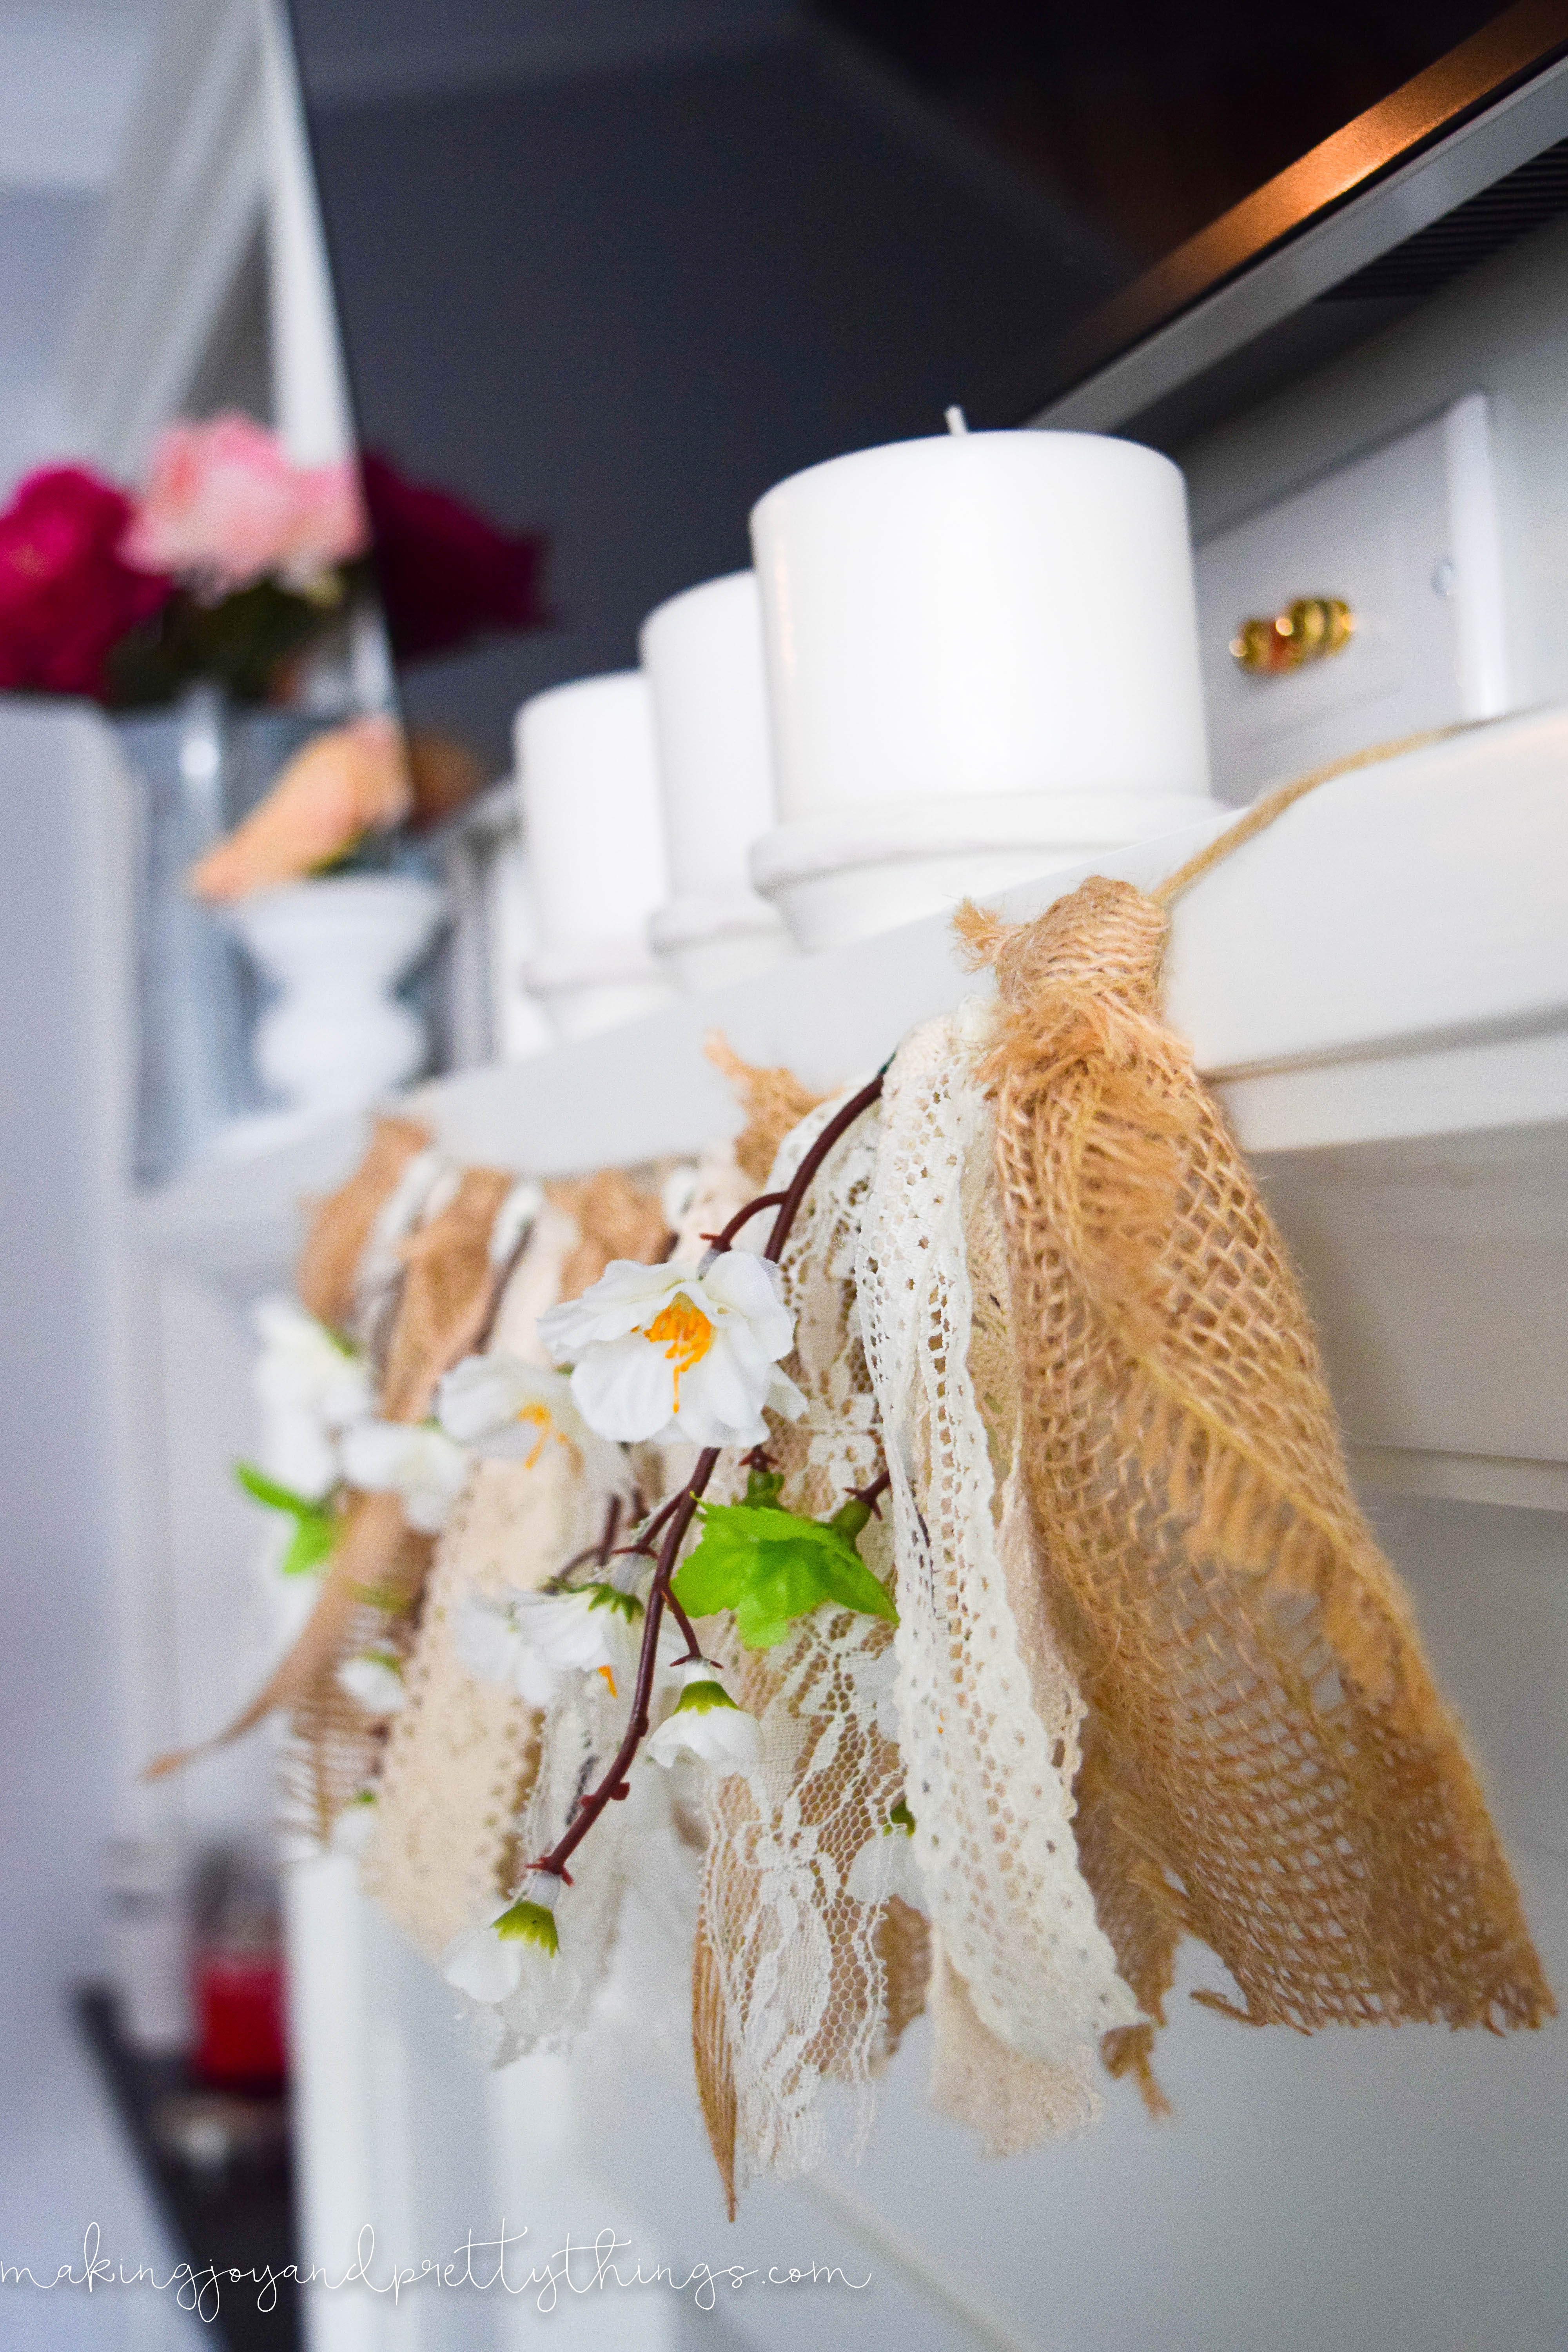 Need some farmhouse inspiration for your mantle? Come check out this amazing and easy DIY farmhouse mantle. Tons of farmhouse inspiration and farmhouse decor with touches of summer color.